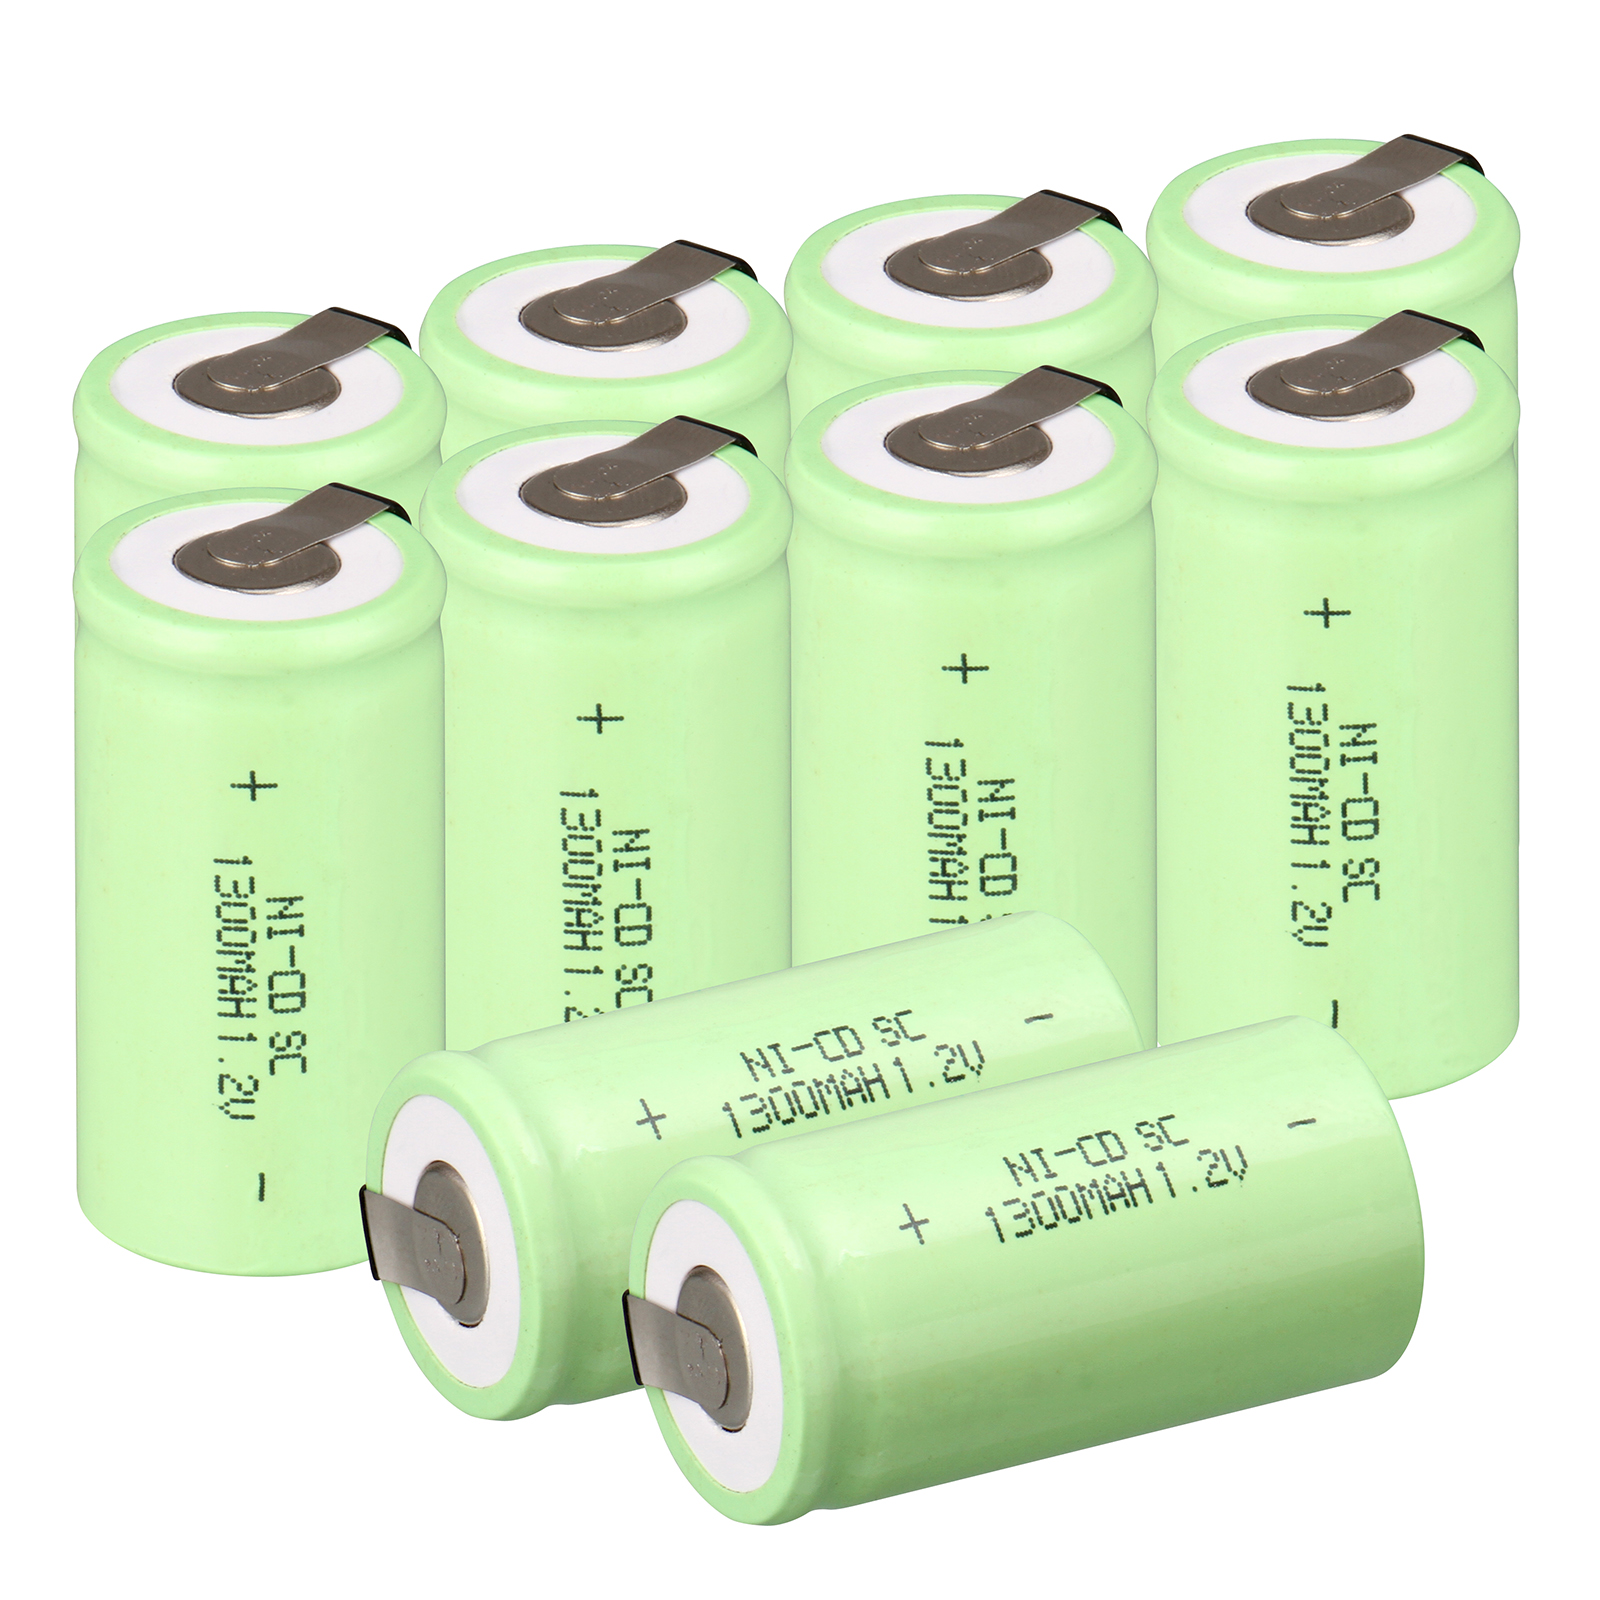 10pcs 1300mAh SC battery <font><b>ni</b></font> <font><b>cd</b></font> <font><b>1.2</b></font> <font><b>v</b></font> battery nicd 1.2v battery <font><b>ni</b></font>-<font><b>cd</b></font> rechargeable batteries image